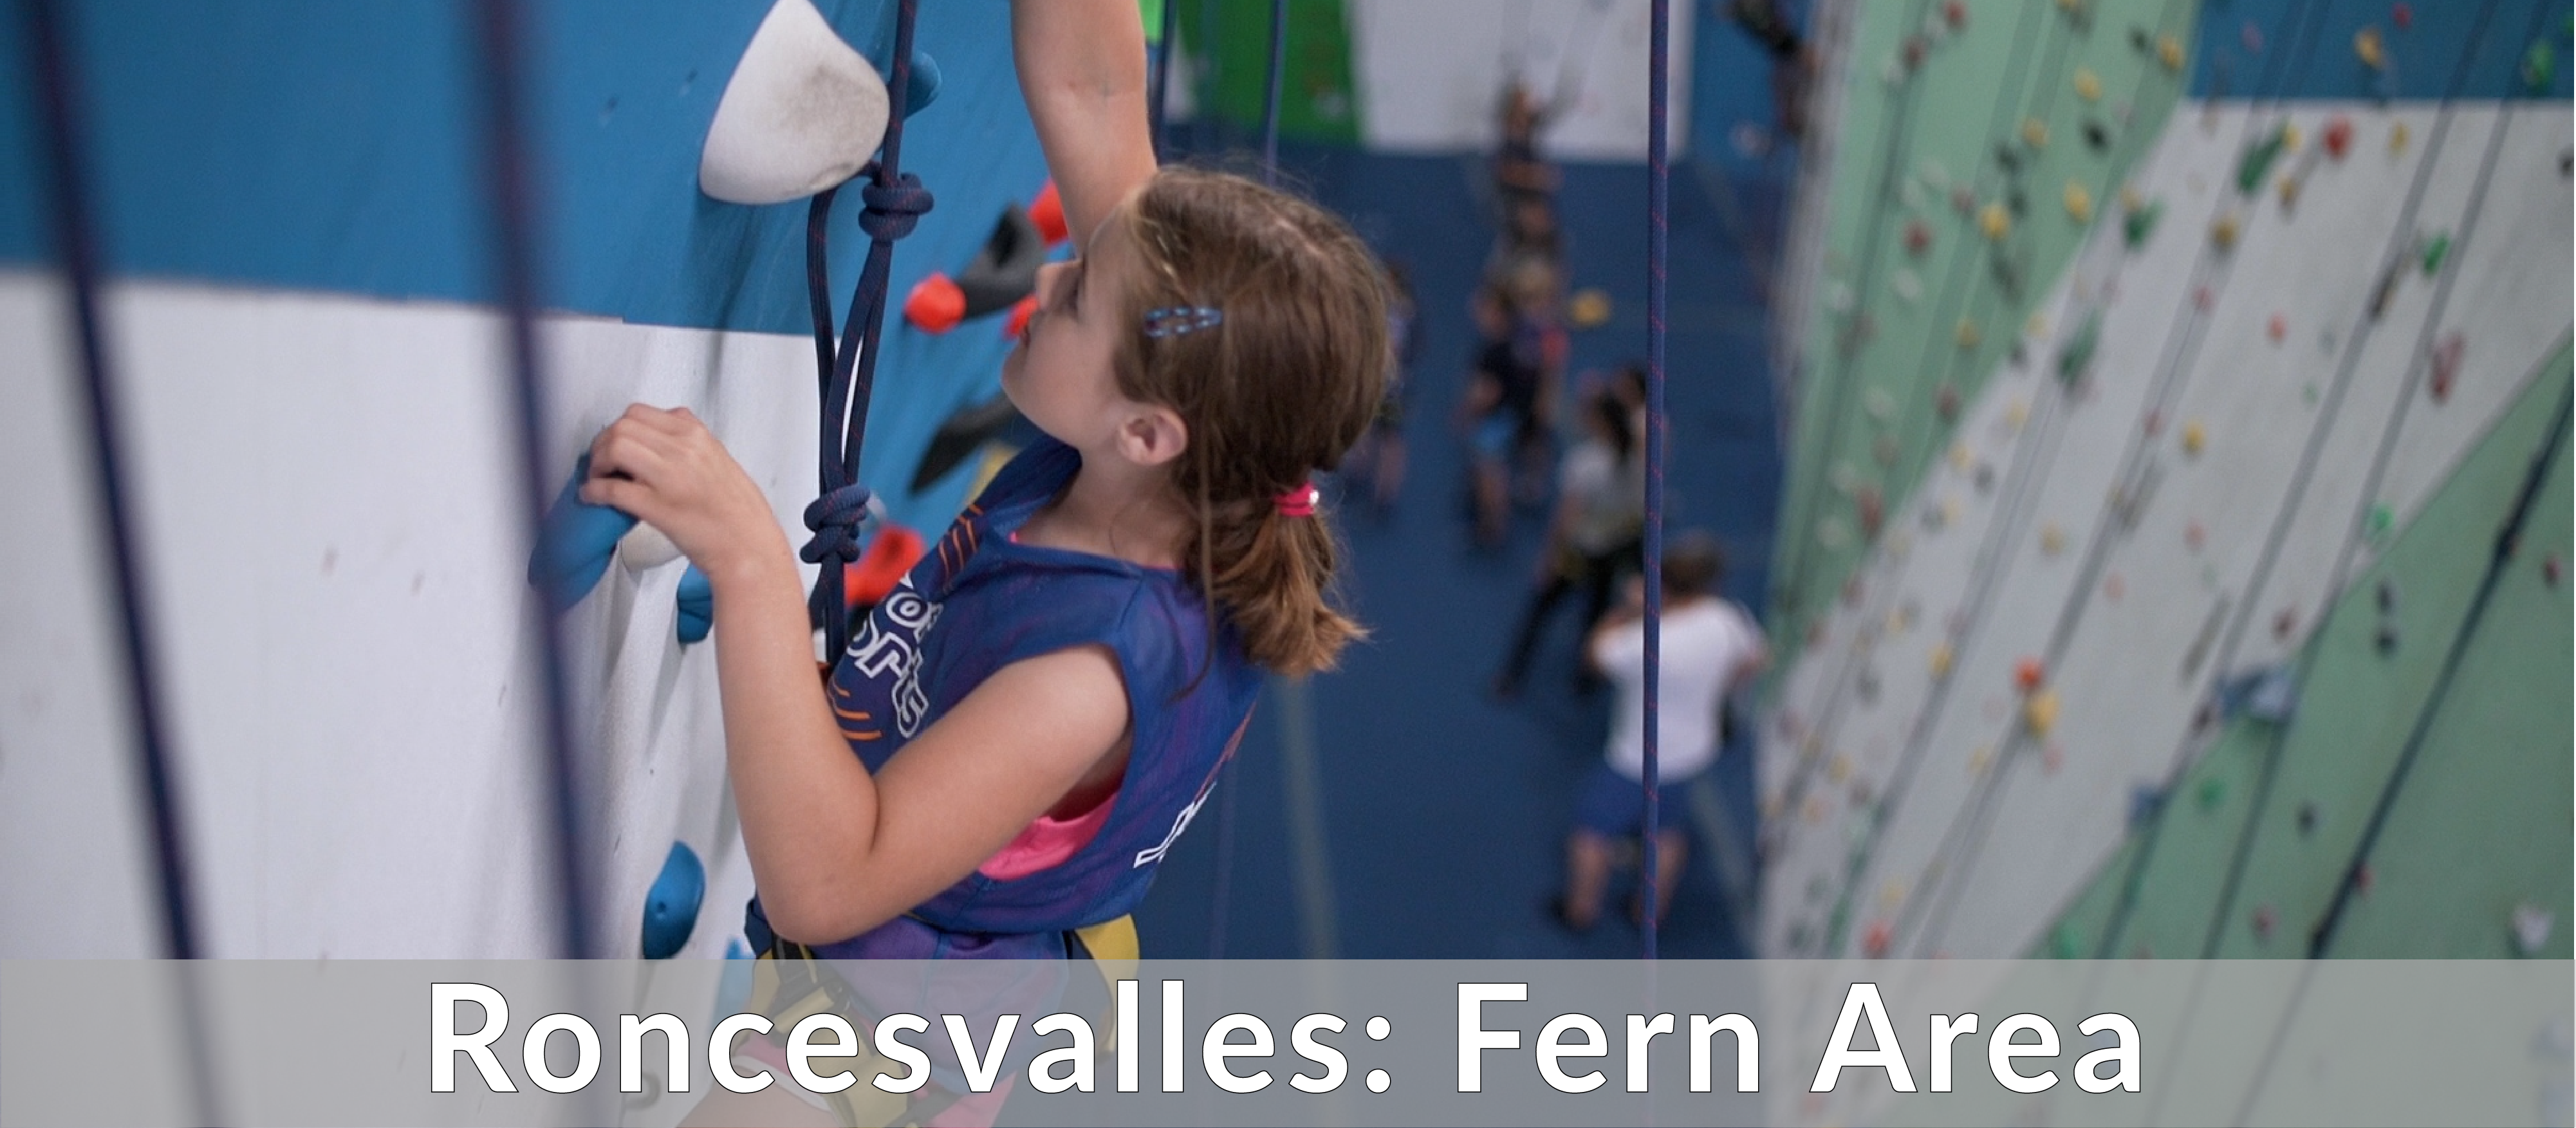 Roncesvalles Fern Area Summer Camps near me 2020